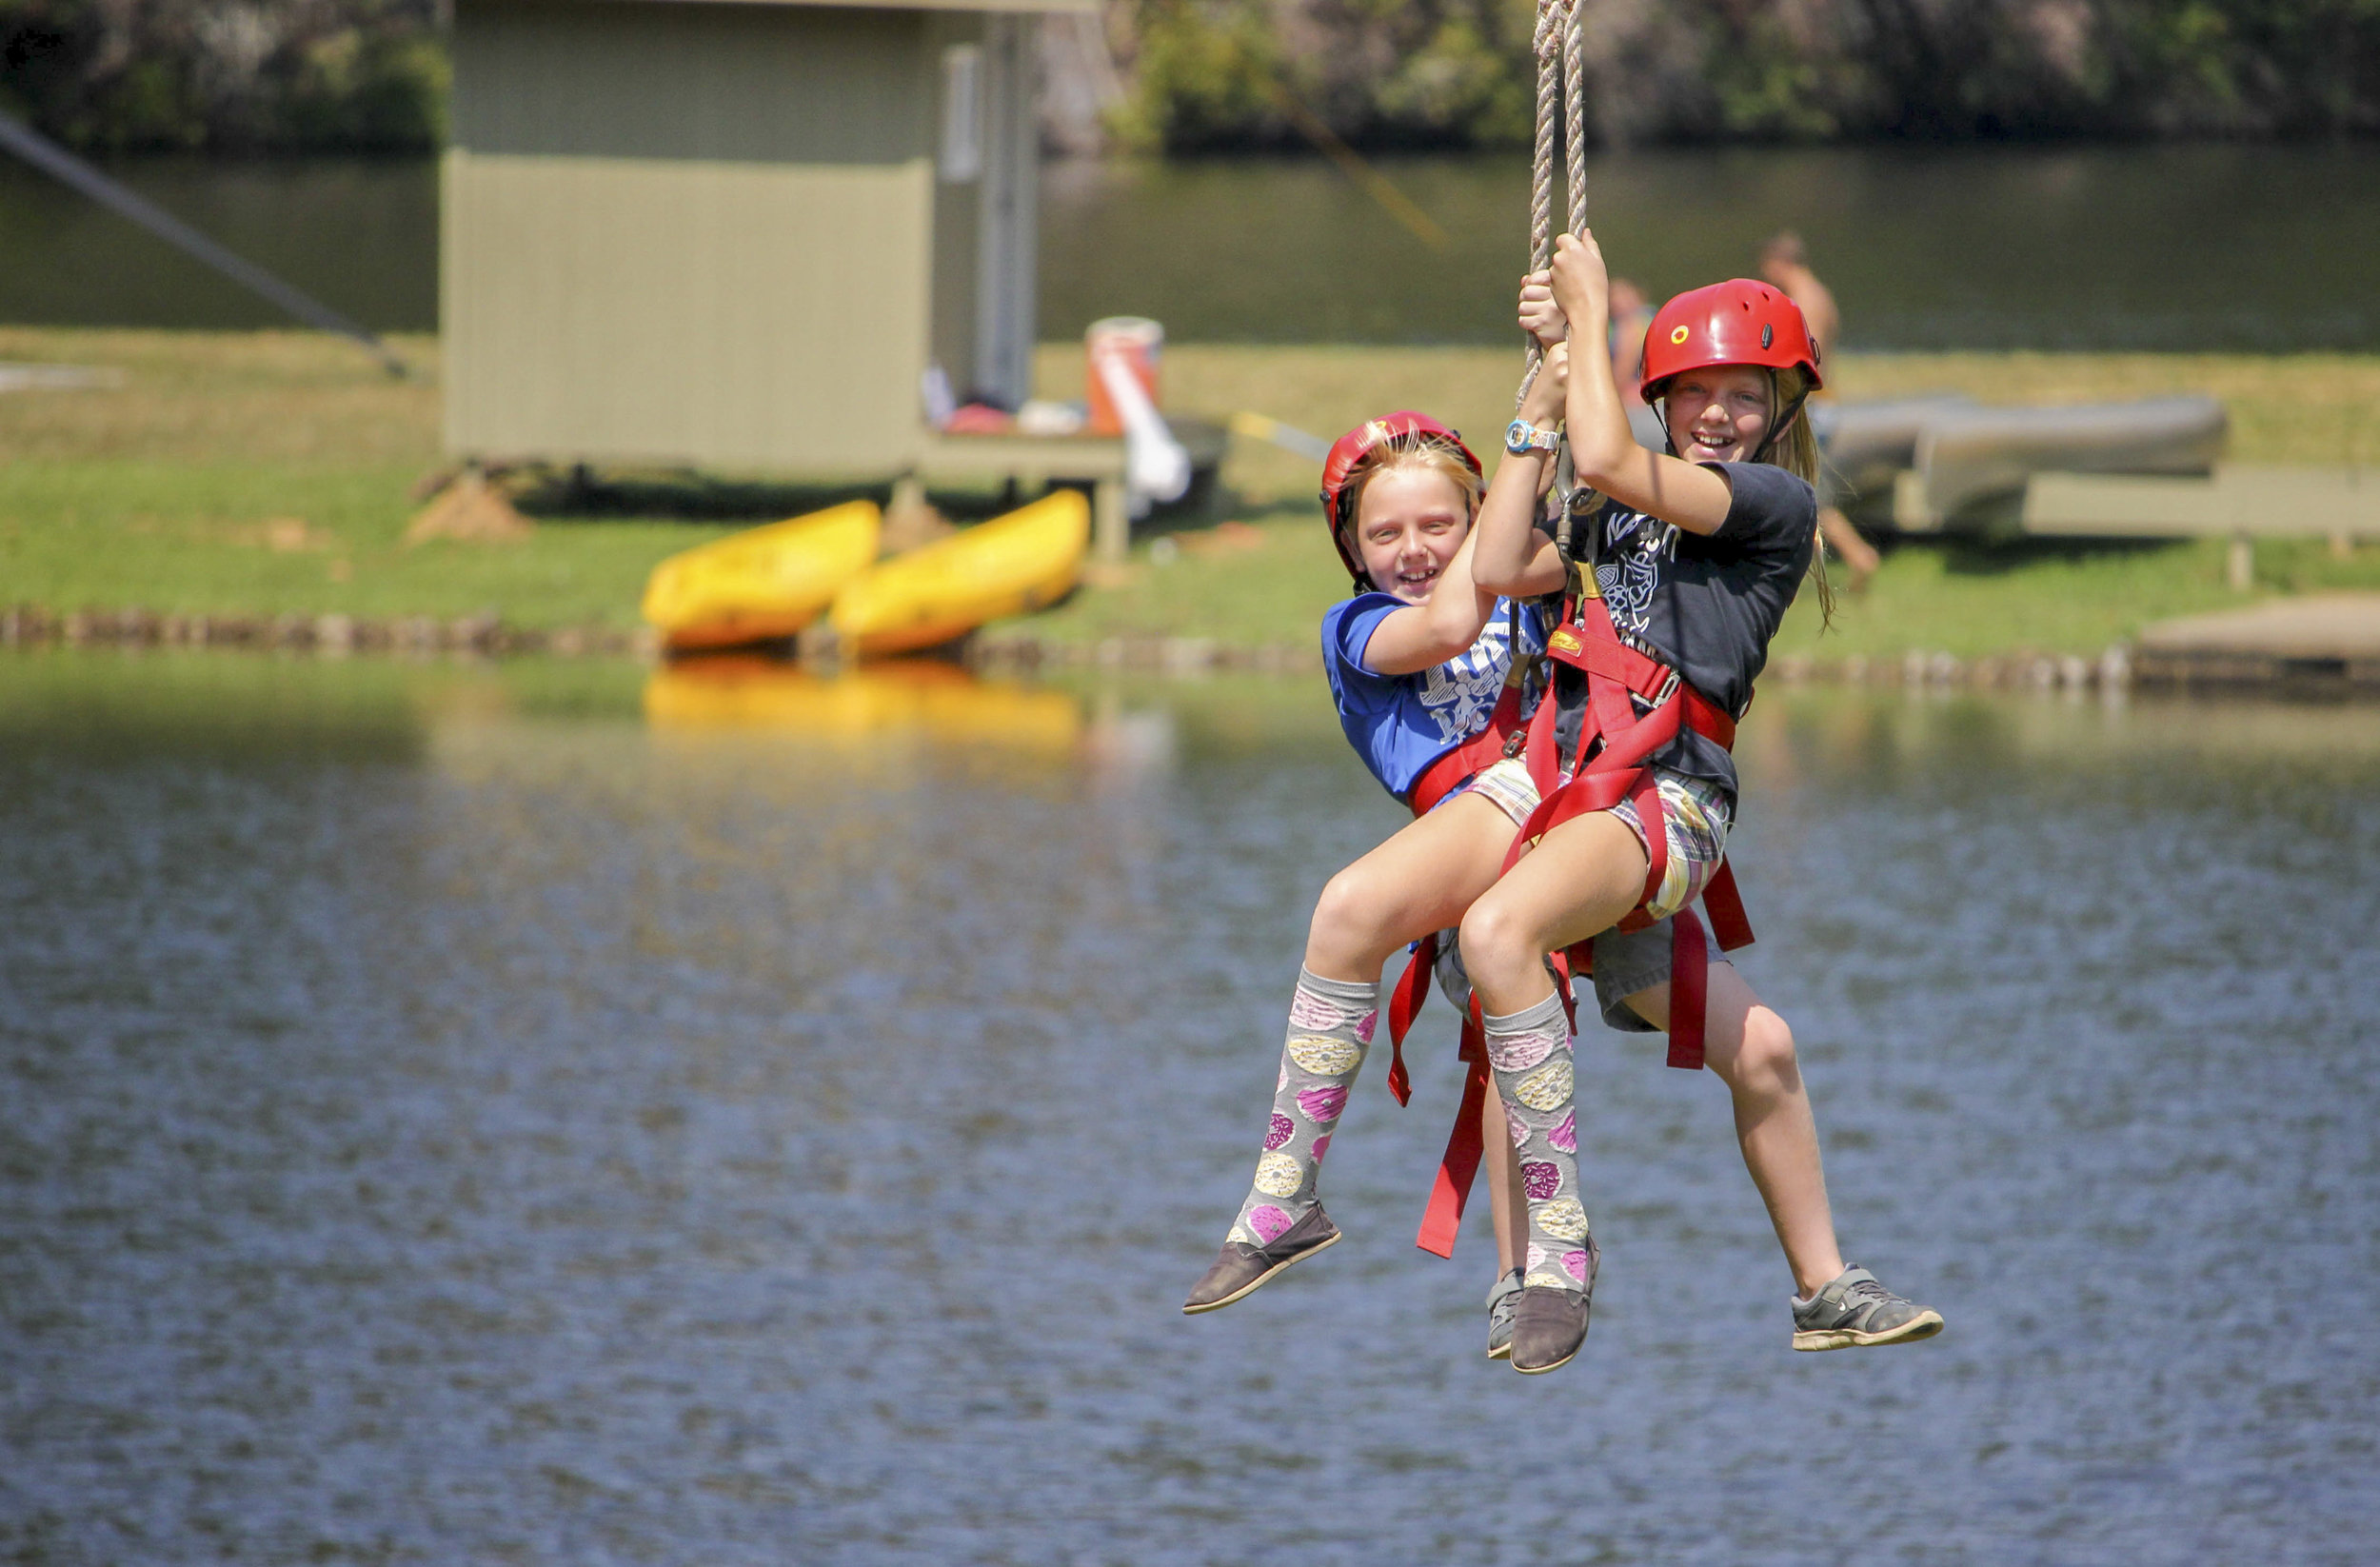 Stay & Play - For ages 7 to adult.  Offered every Sunday from 3:00 - 5:00 p.m. during the summer camp season (Junior I - Teen II).  Tickets can be purchased at the camp store.All proceeds go to the CSYC Campership Fund